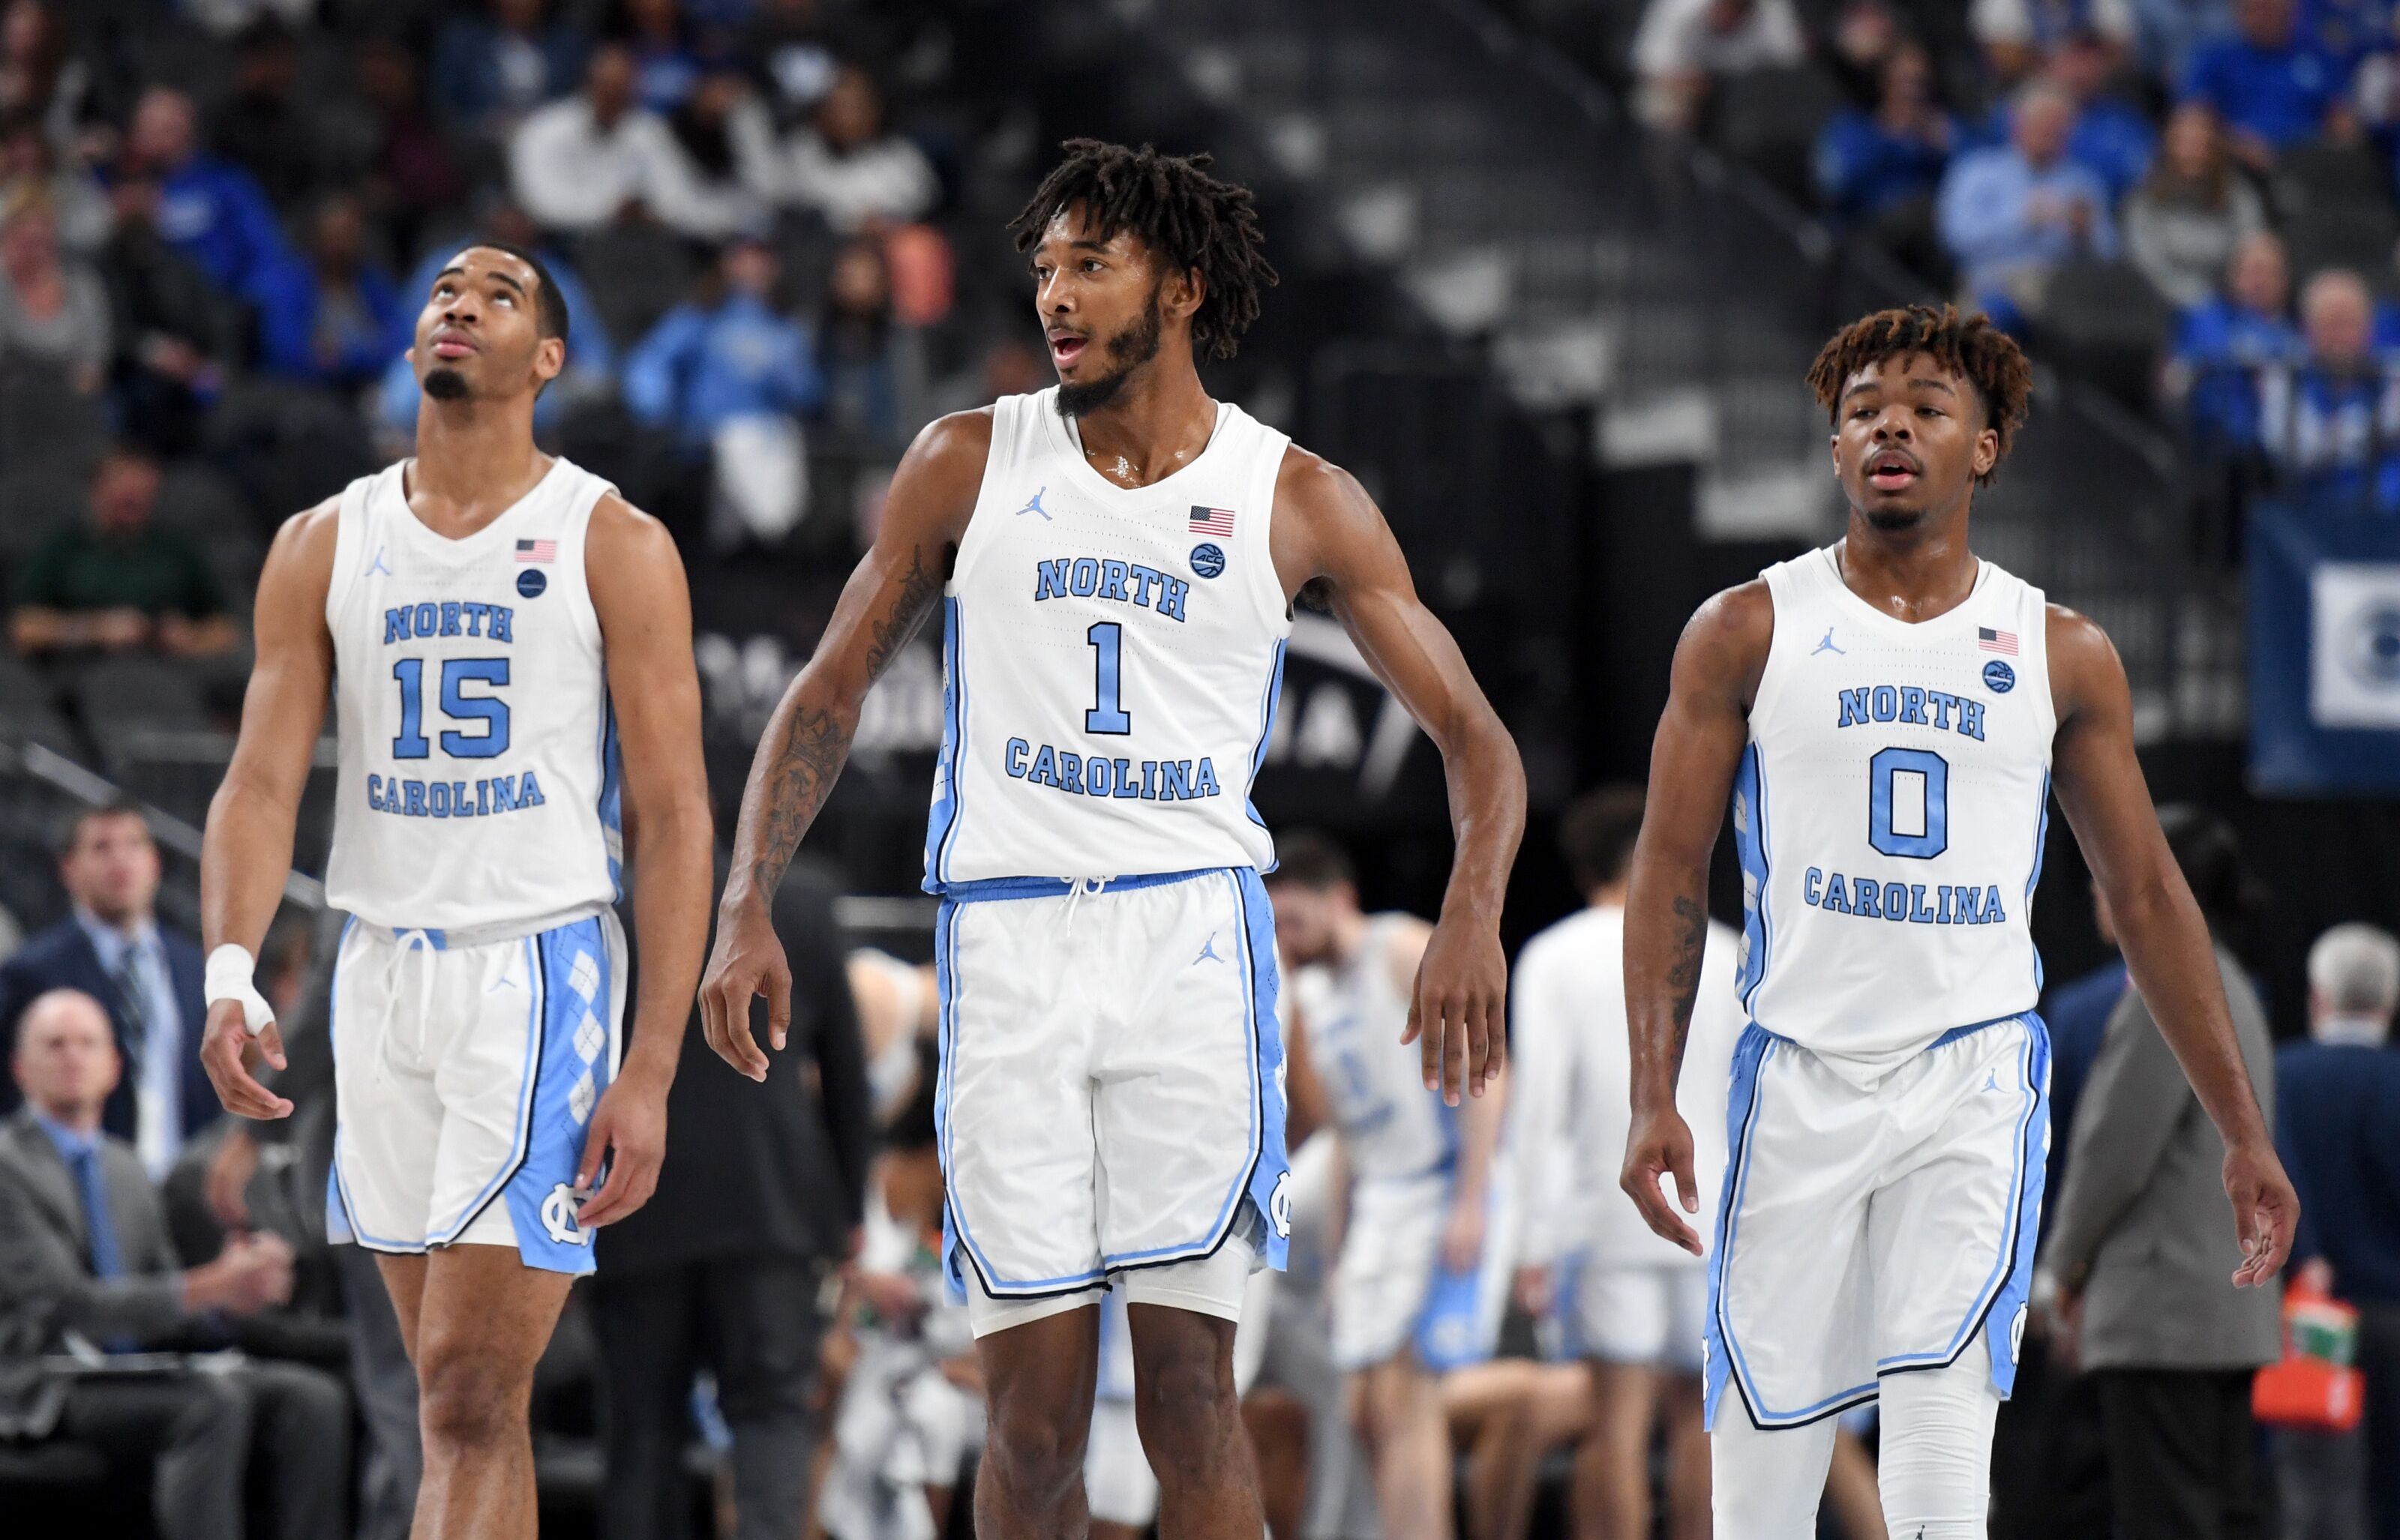 UNC Basketball: Tar Heels get back to winning ways with NC State victory